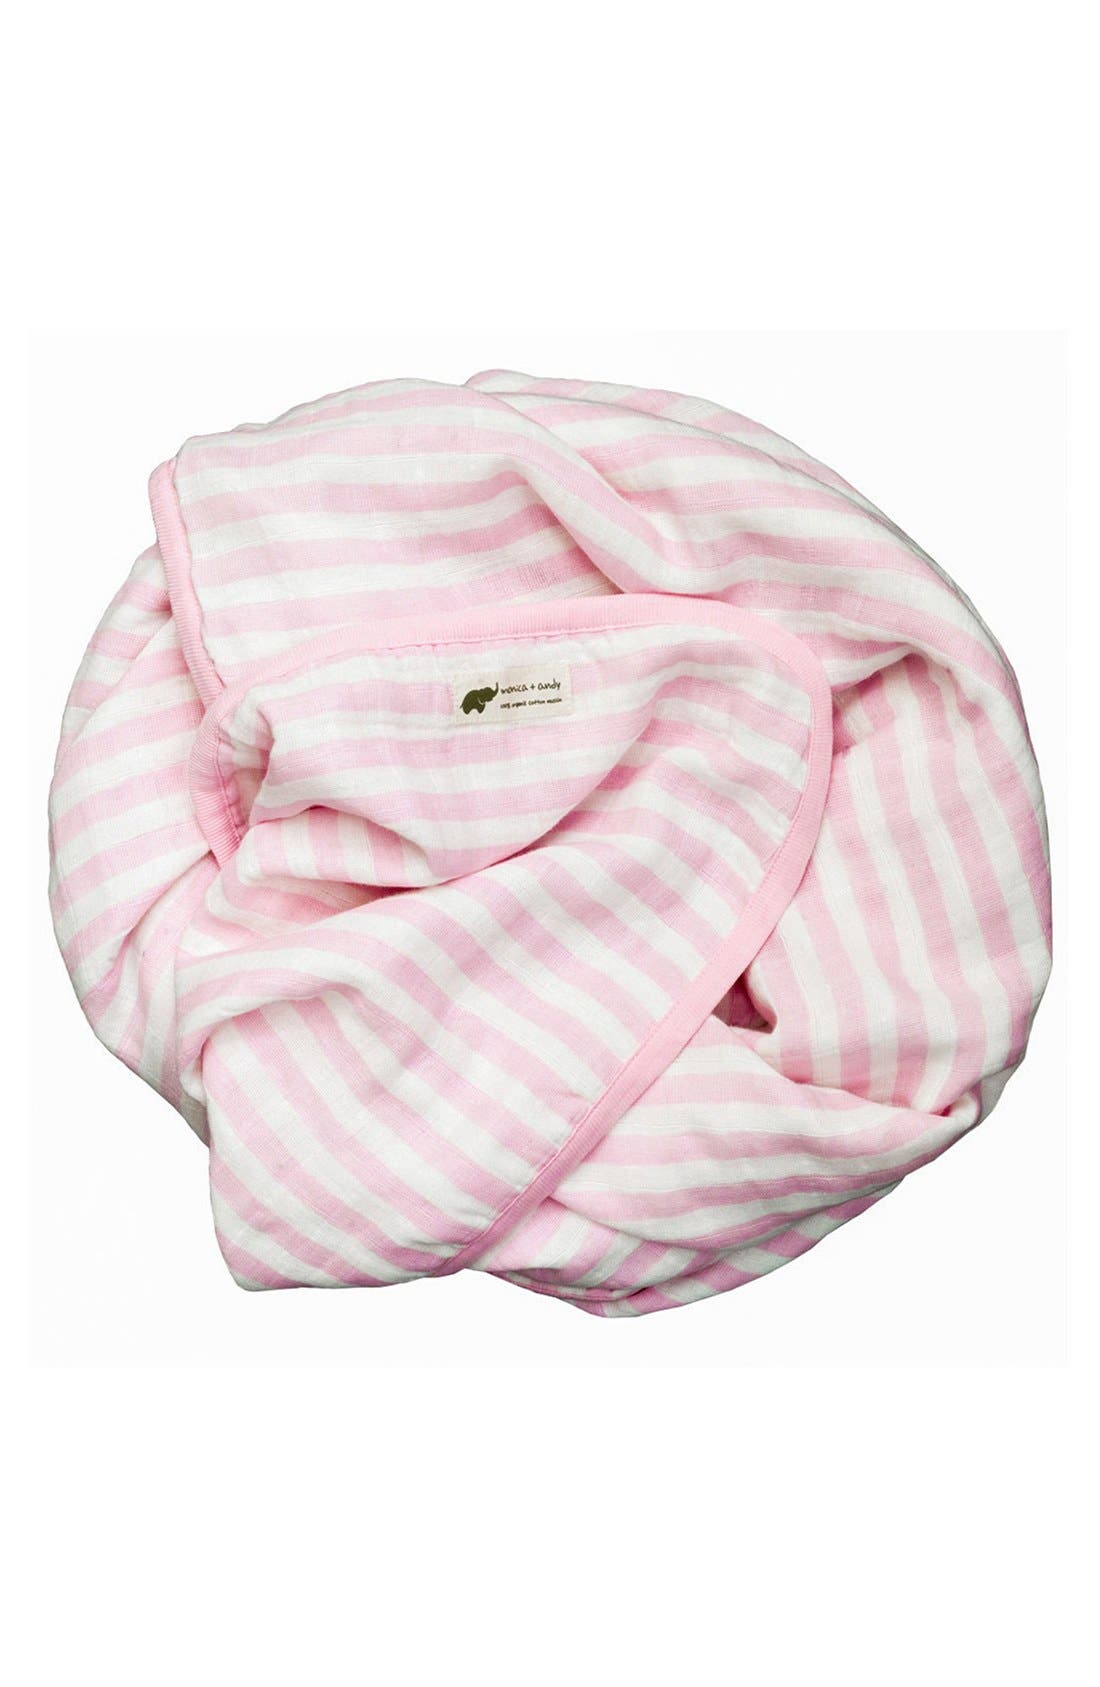 MONICA + ANDY Organic Cotton Muslin Blanket